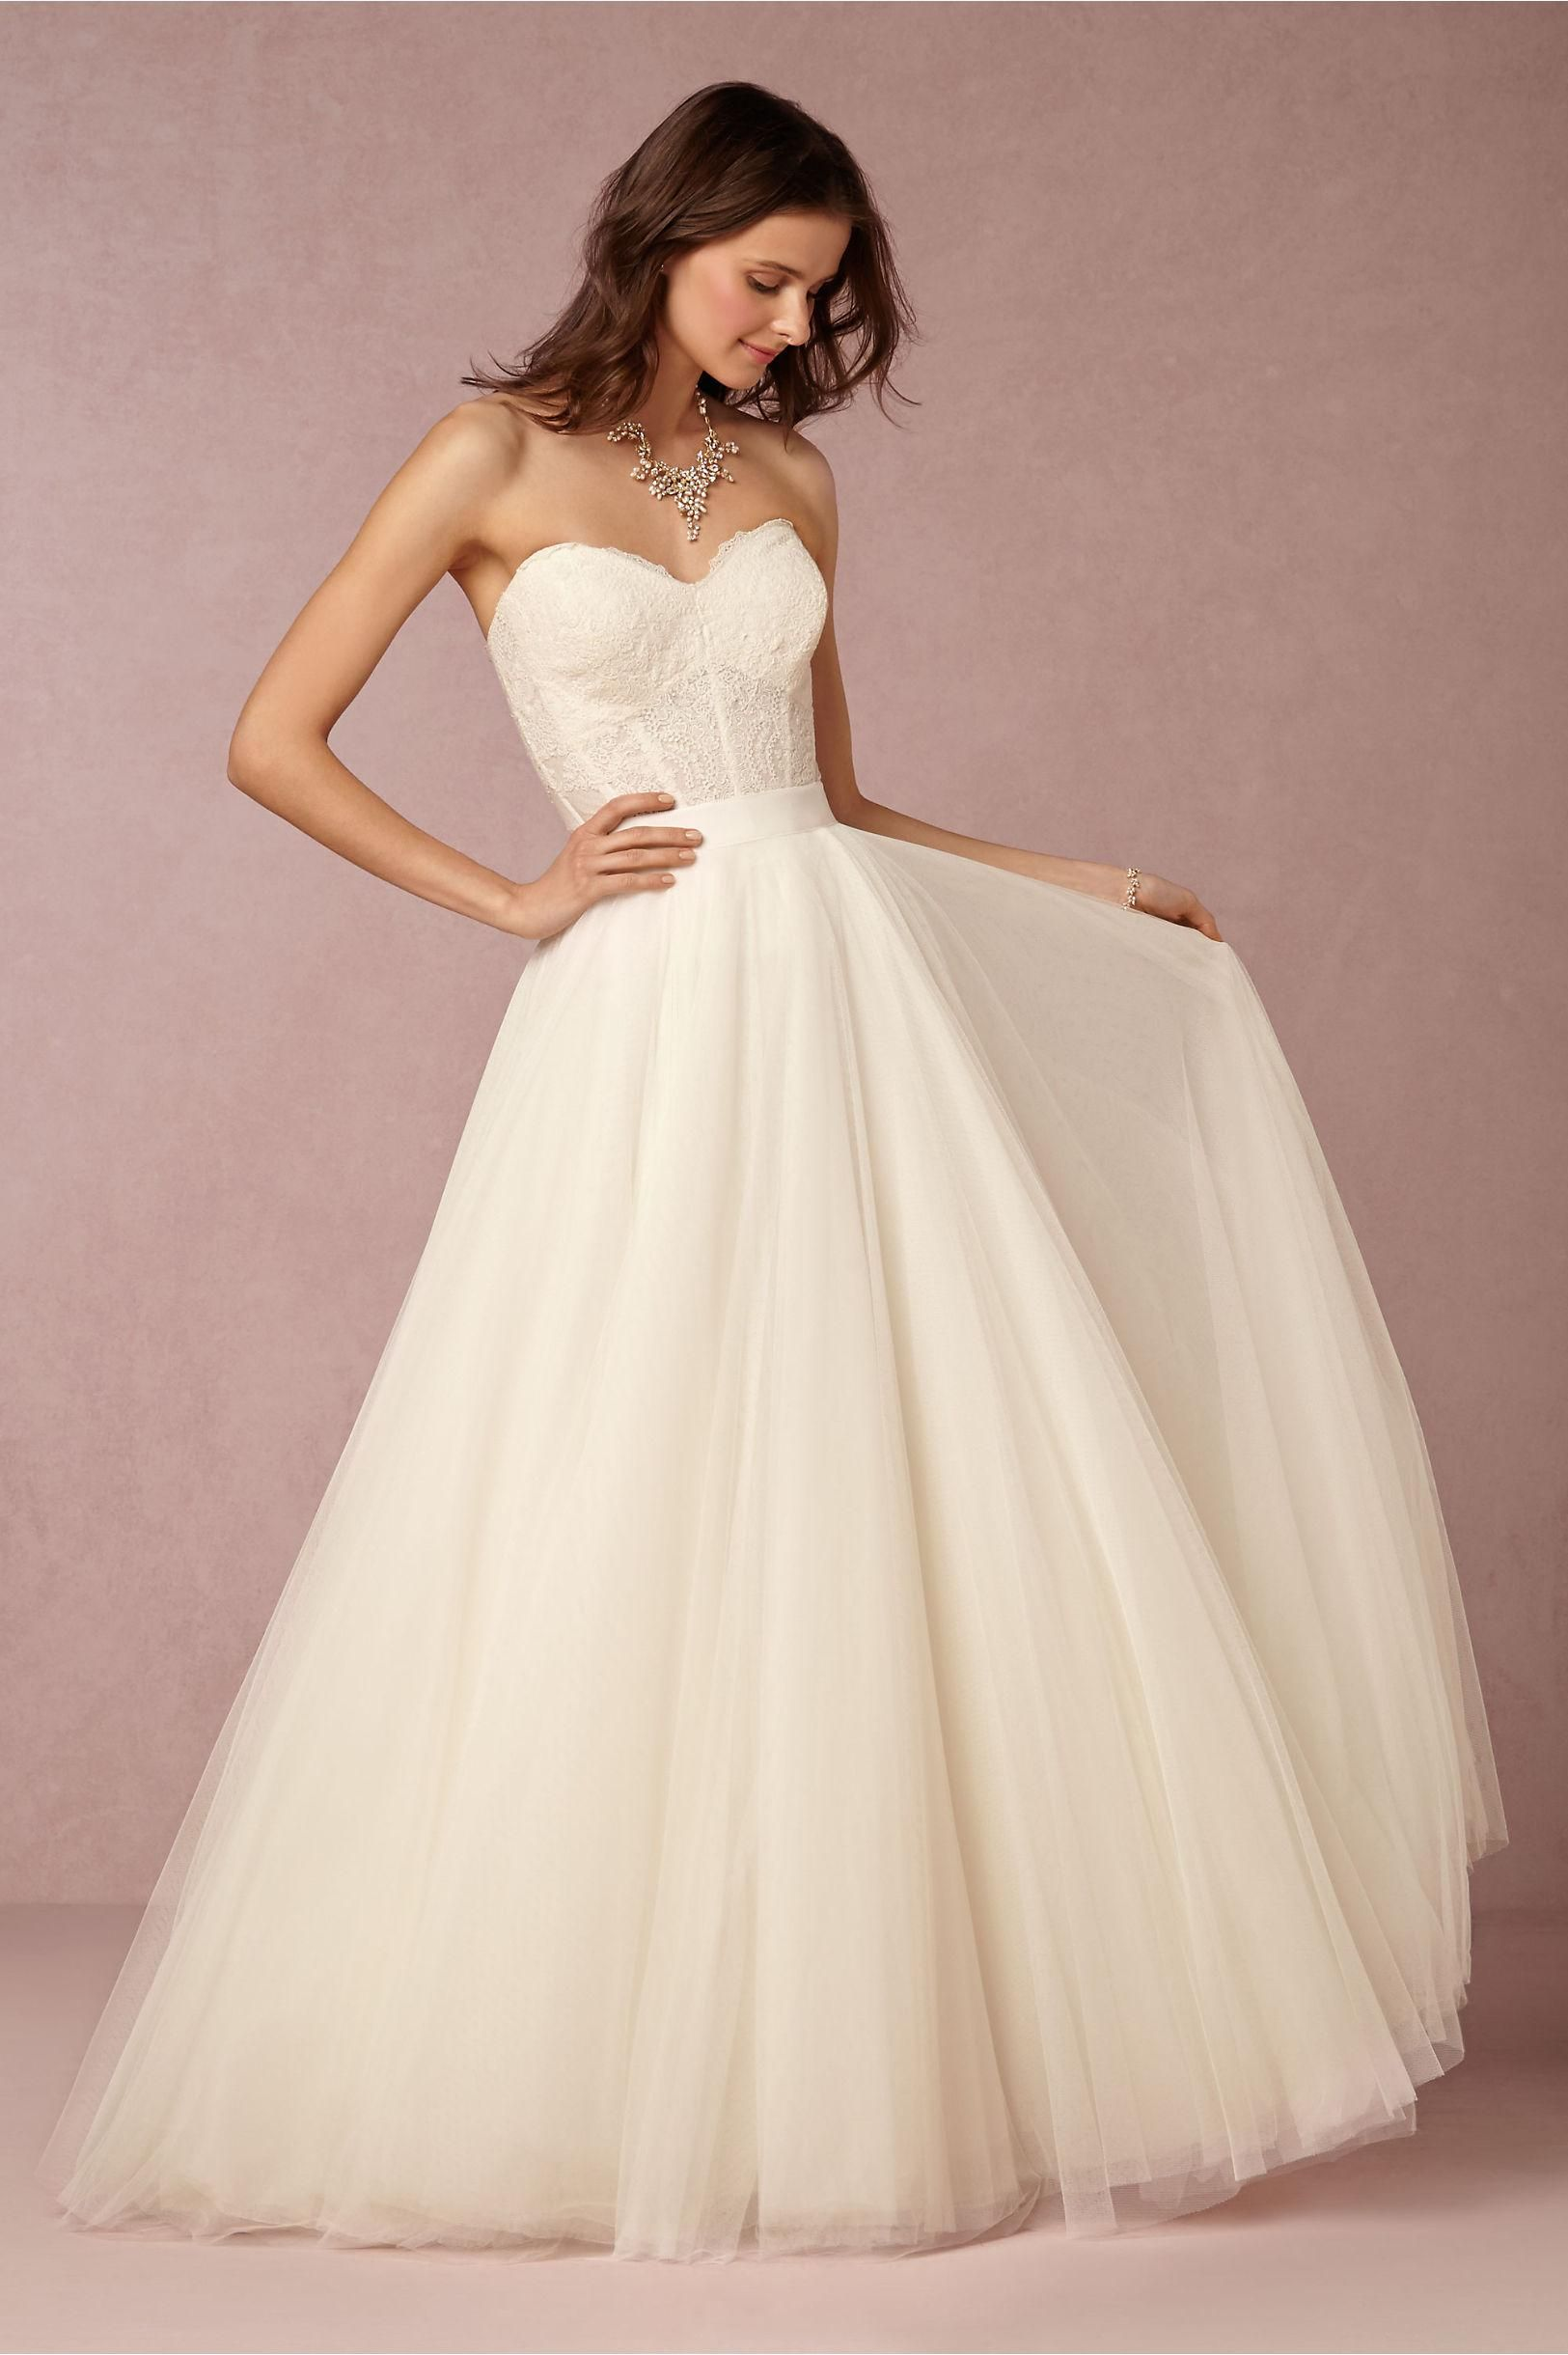 Wedding Designers Bhldn 2016 Cheap Dresses Sweetheart Appliques Tulle A Line White Bridal Gowns With